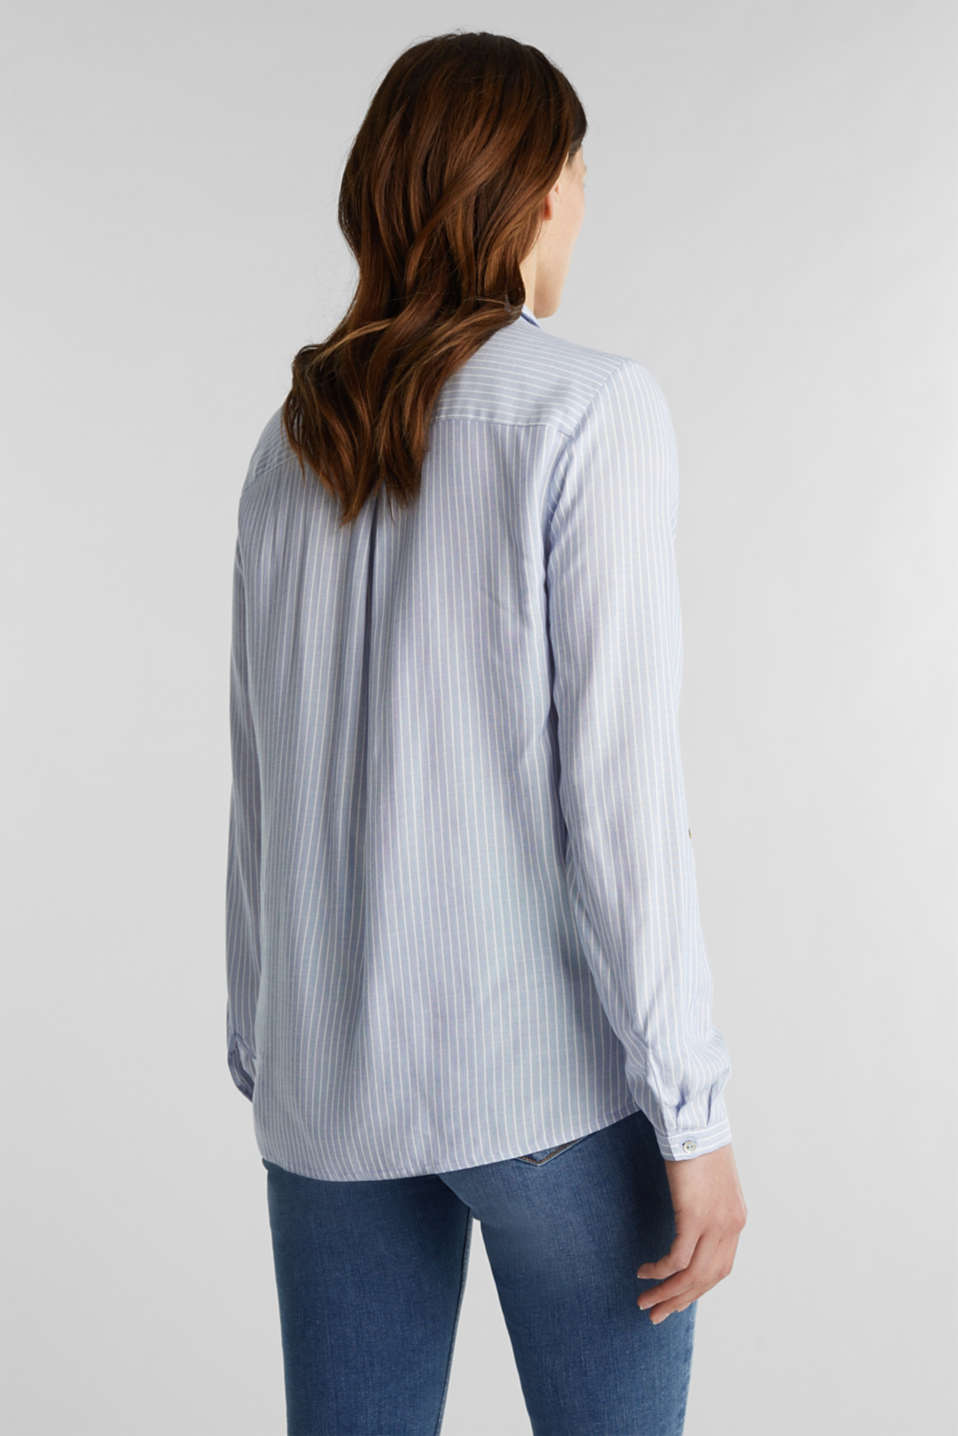 Shirt blouse with stripes and turn-up sleeves, PASTEL BLUE, detail image number 3